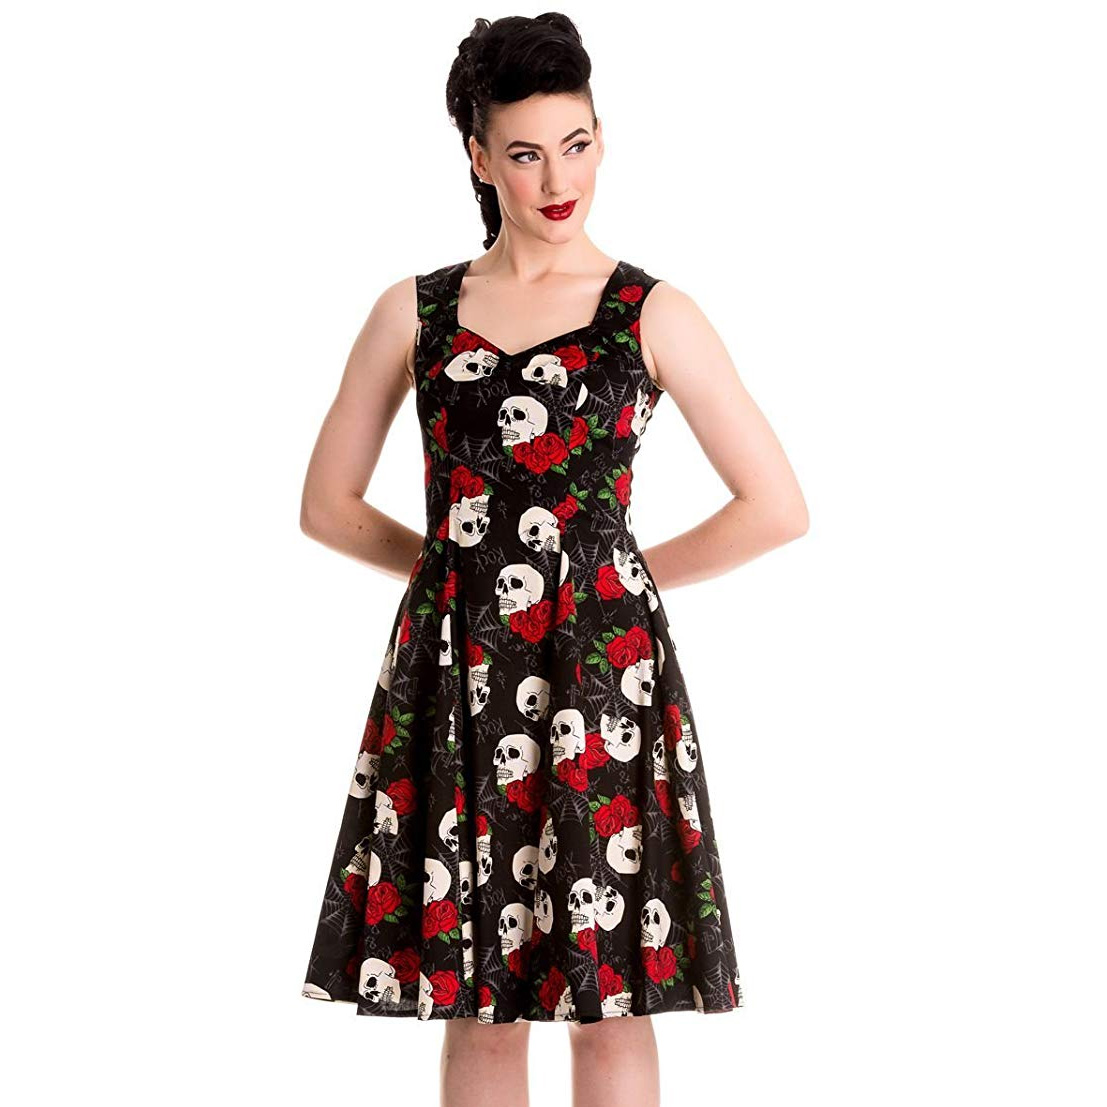 rebelsmarket_hell_bunny_rock_and_ruin_dress_dresses_4.jpg